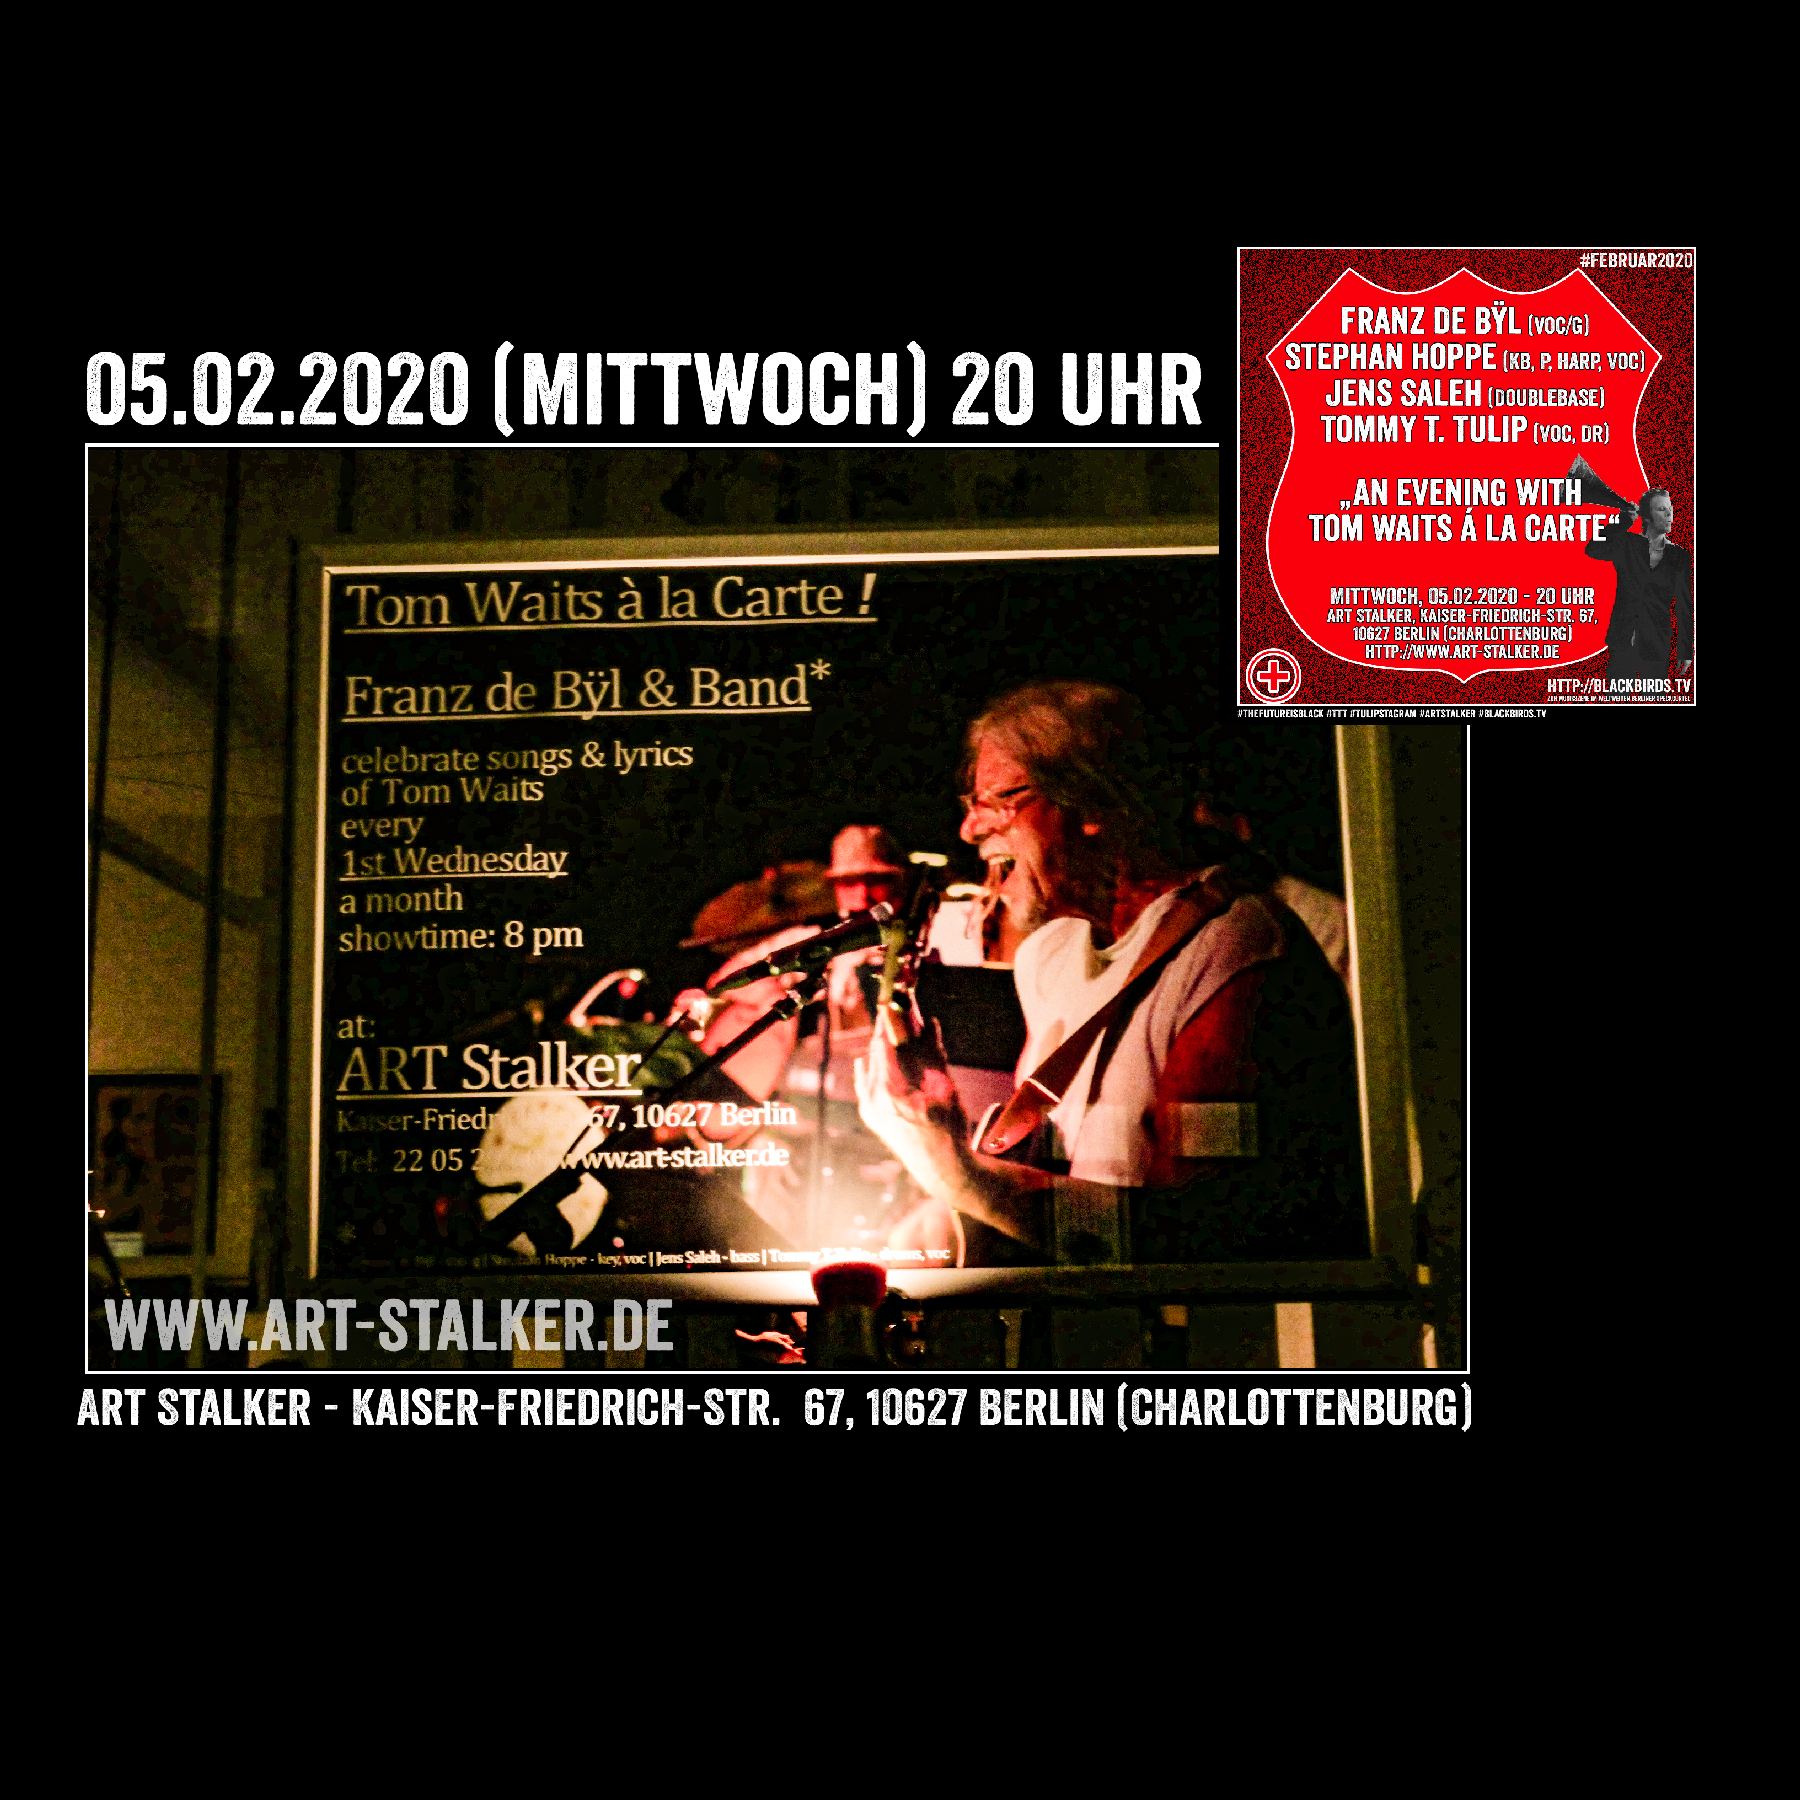 "05.02.2020 - 20 Uhr Franz de Bÿl & Vinÿl ""An Evening With Tom Waits á la Carte #ArtStalkerBerlin"